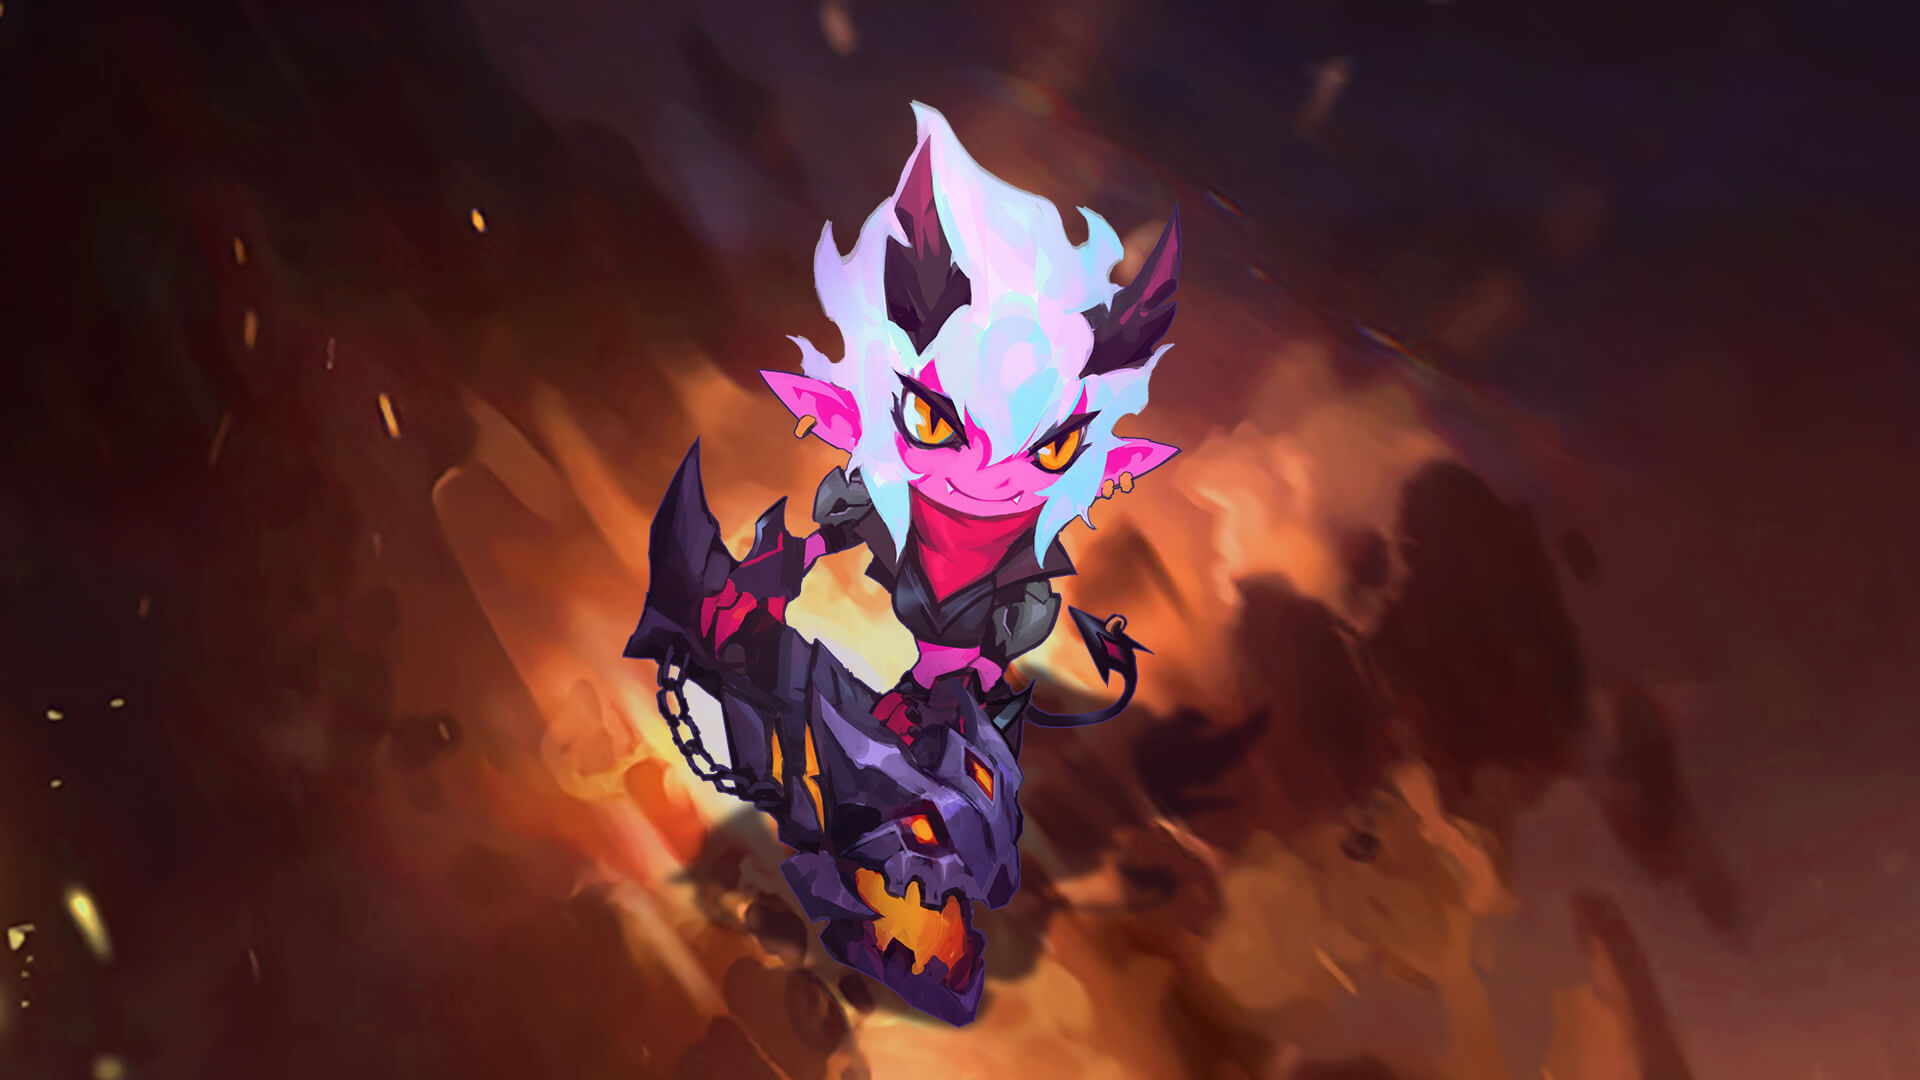 Little Demon Tristana Splash Art Vfx League Of Legends